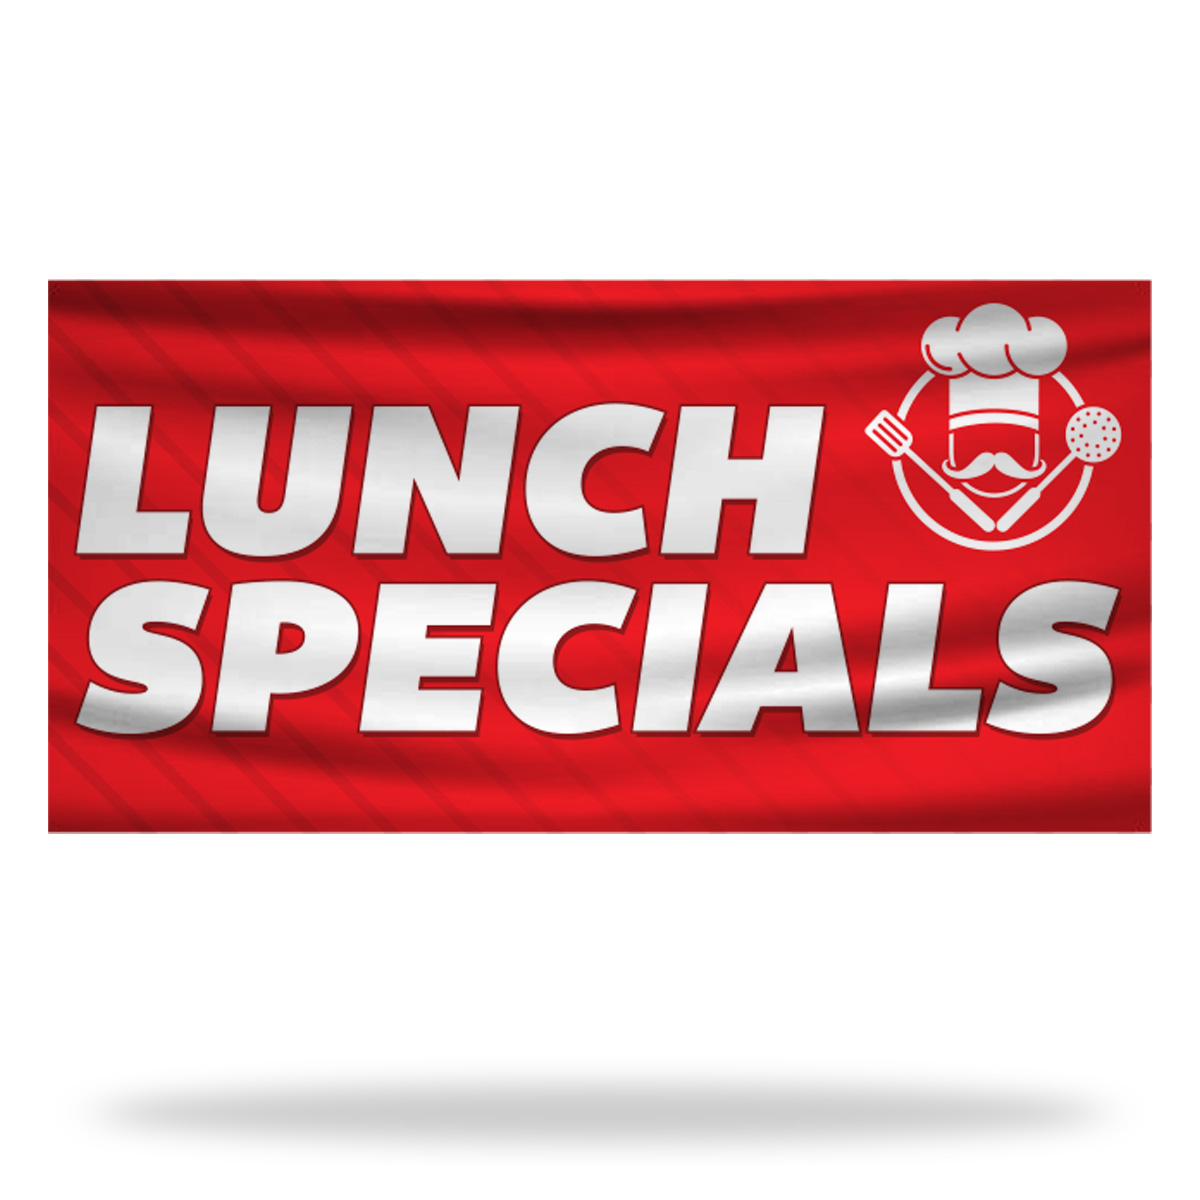 Lunch Specials Flags & Banners Design 03